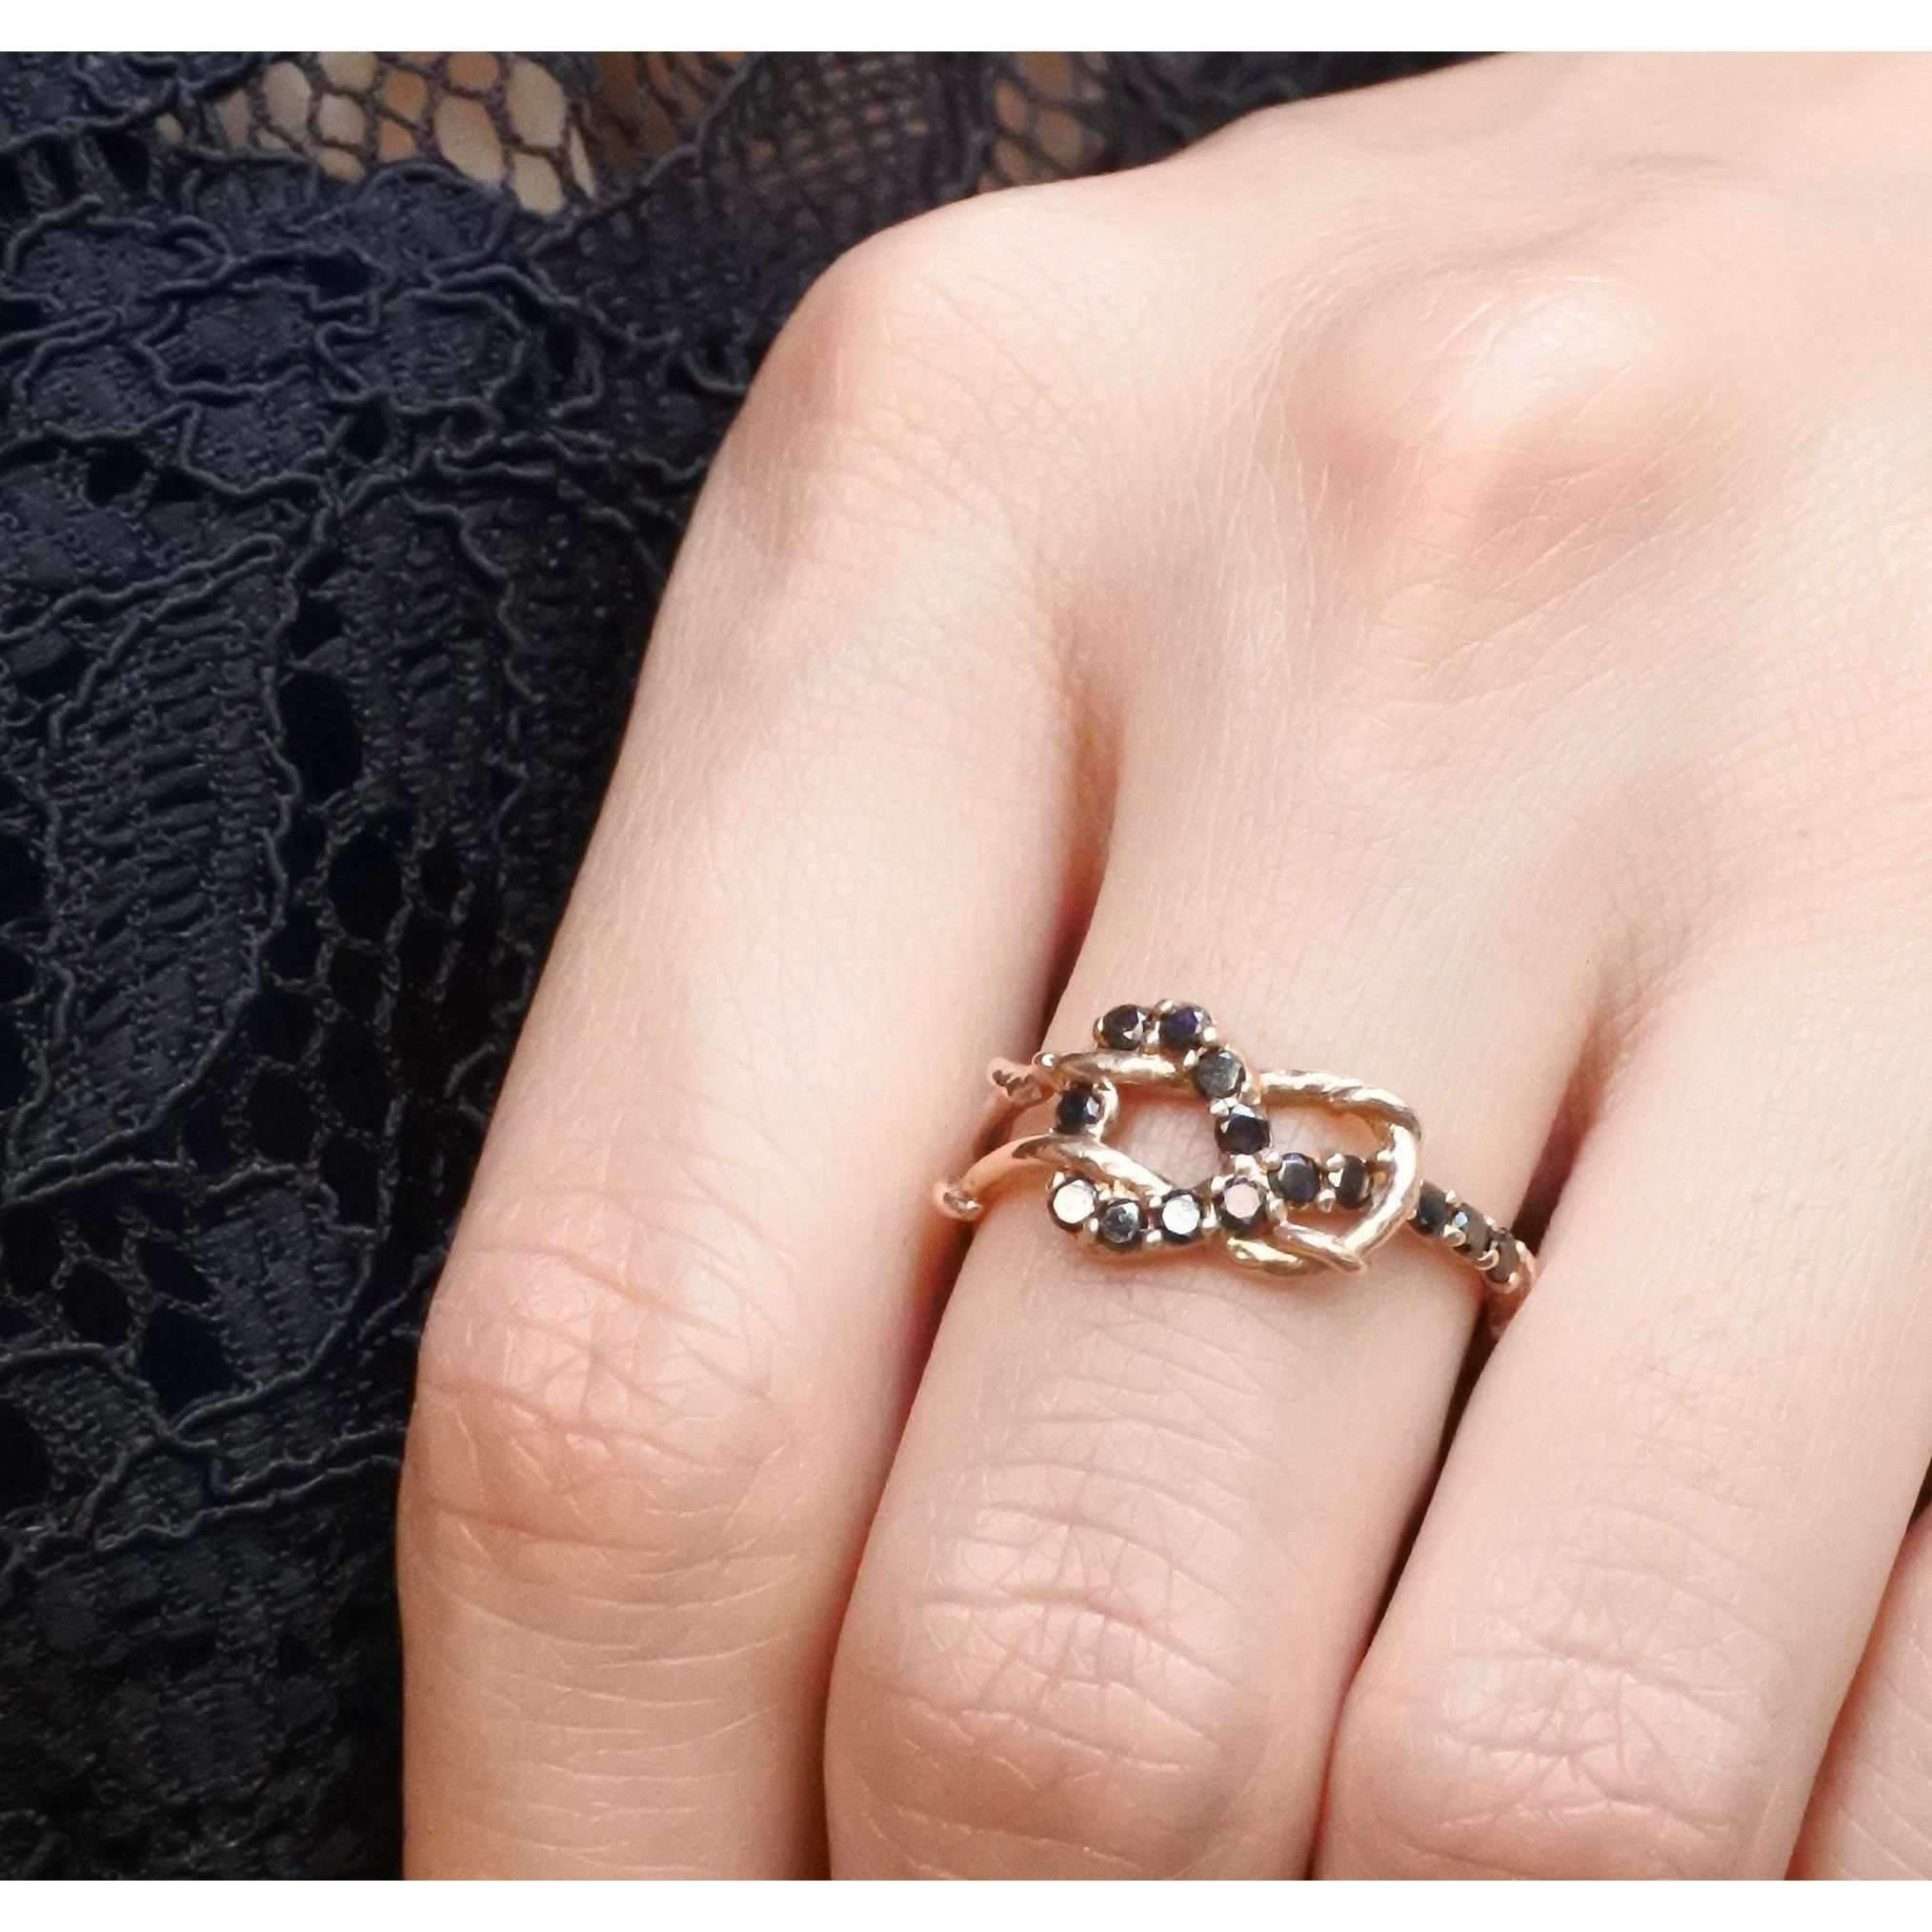 Lyst - Karen Karch Rose Gold Plated Love Knot